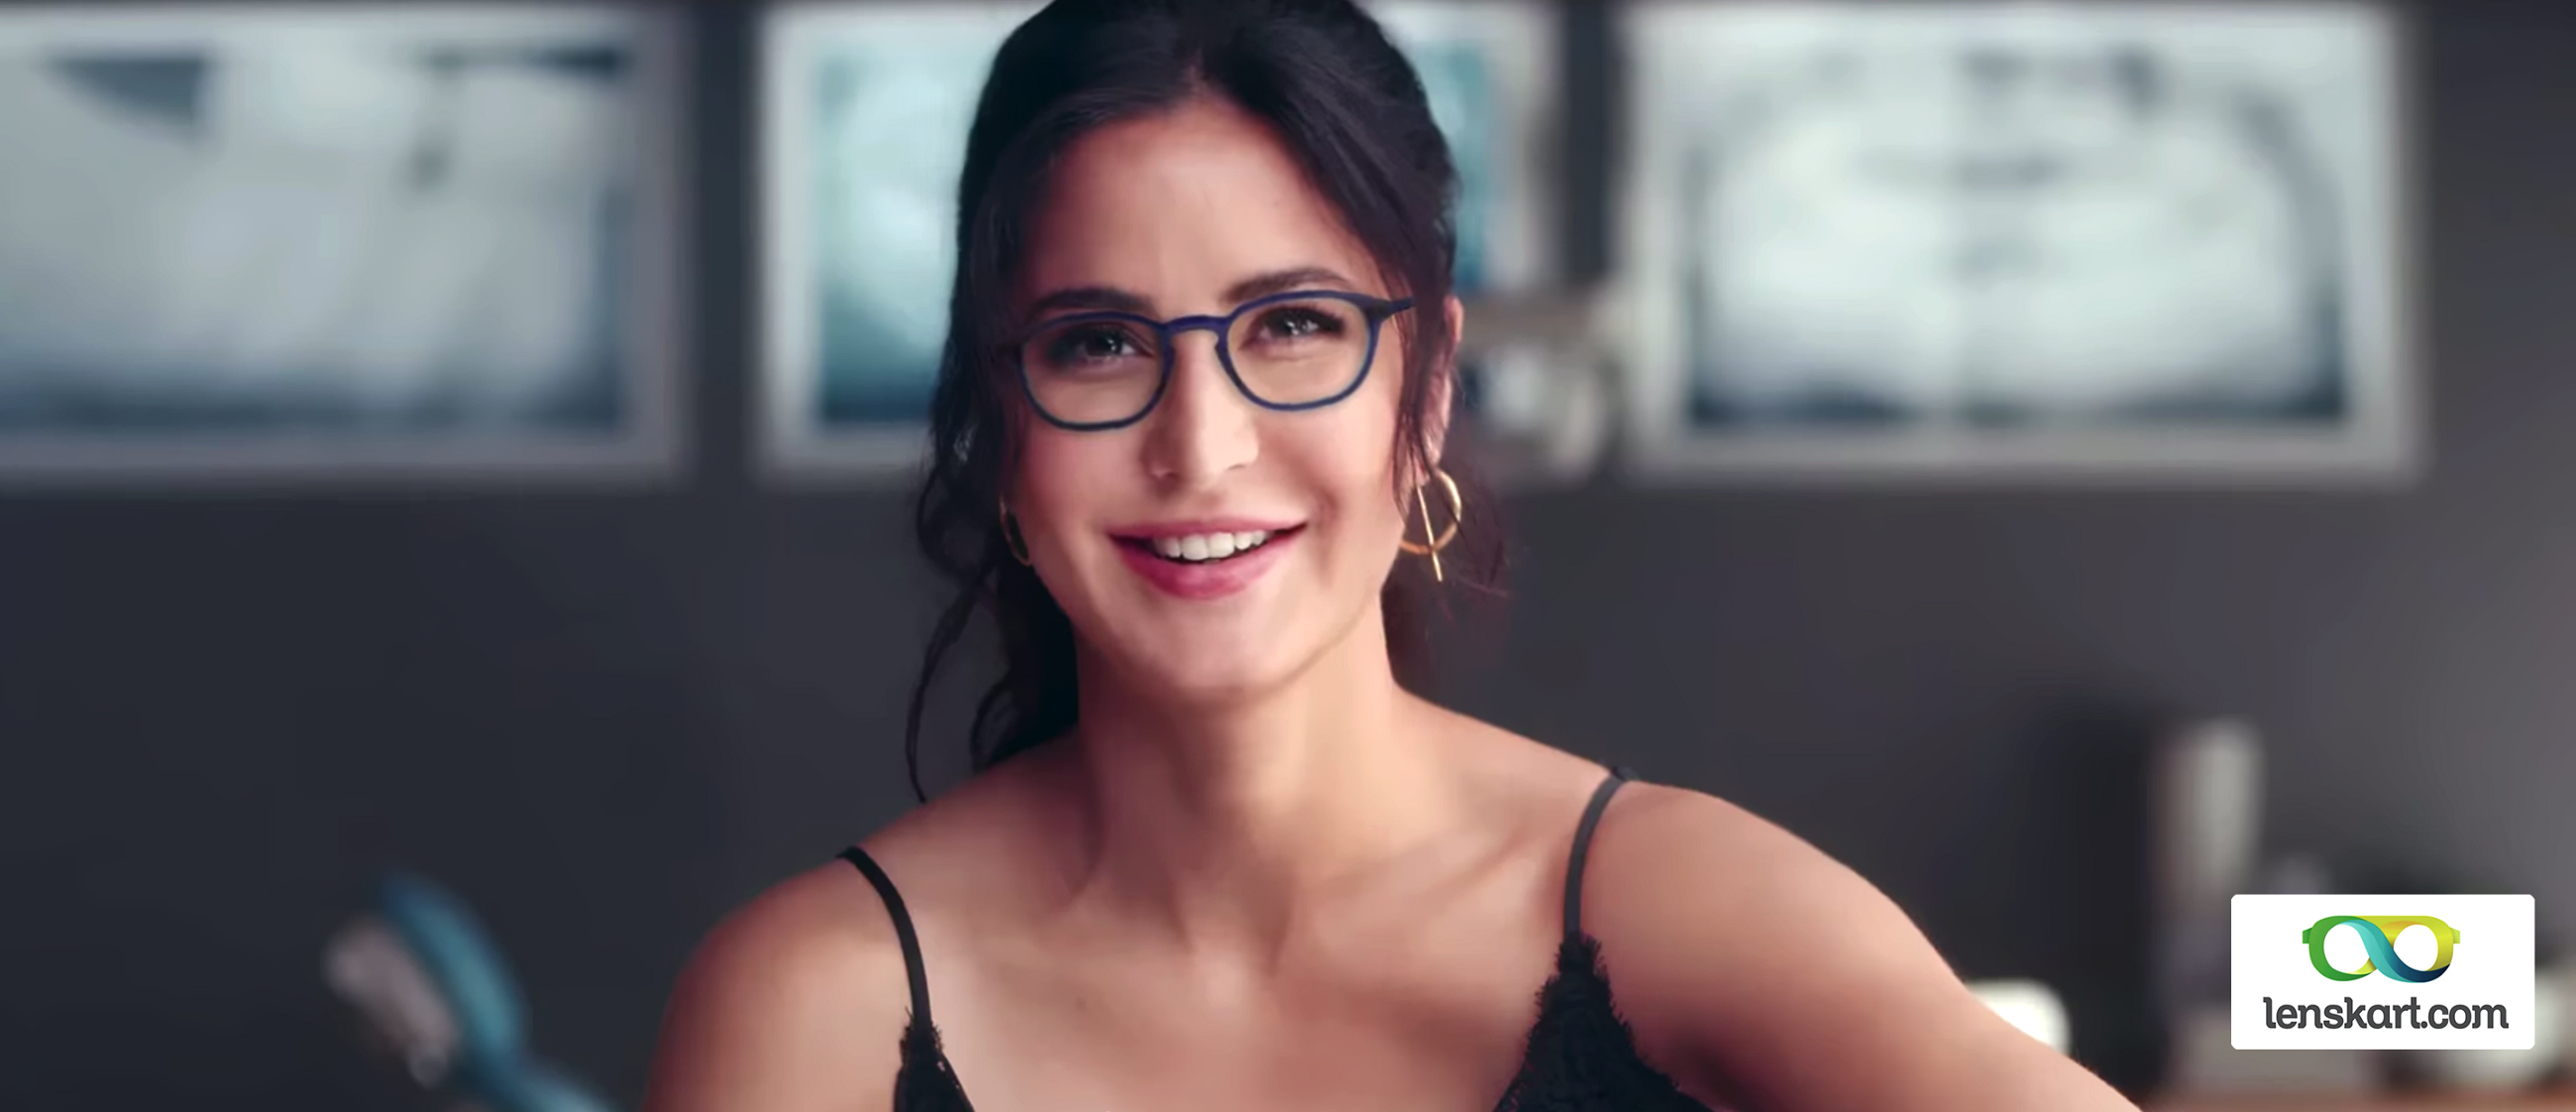 7bc560f6b1 Katrina Kaif screenshot taken from Lenskart advertisement video below